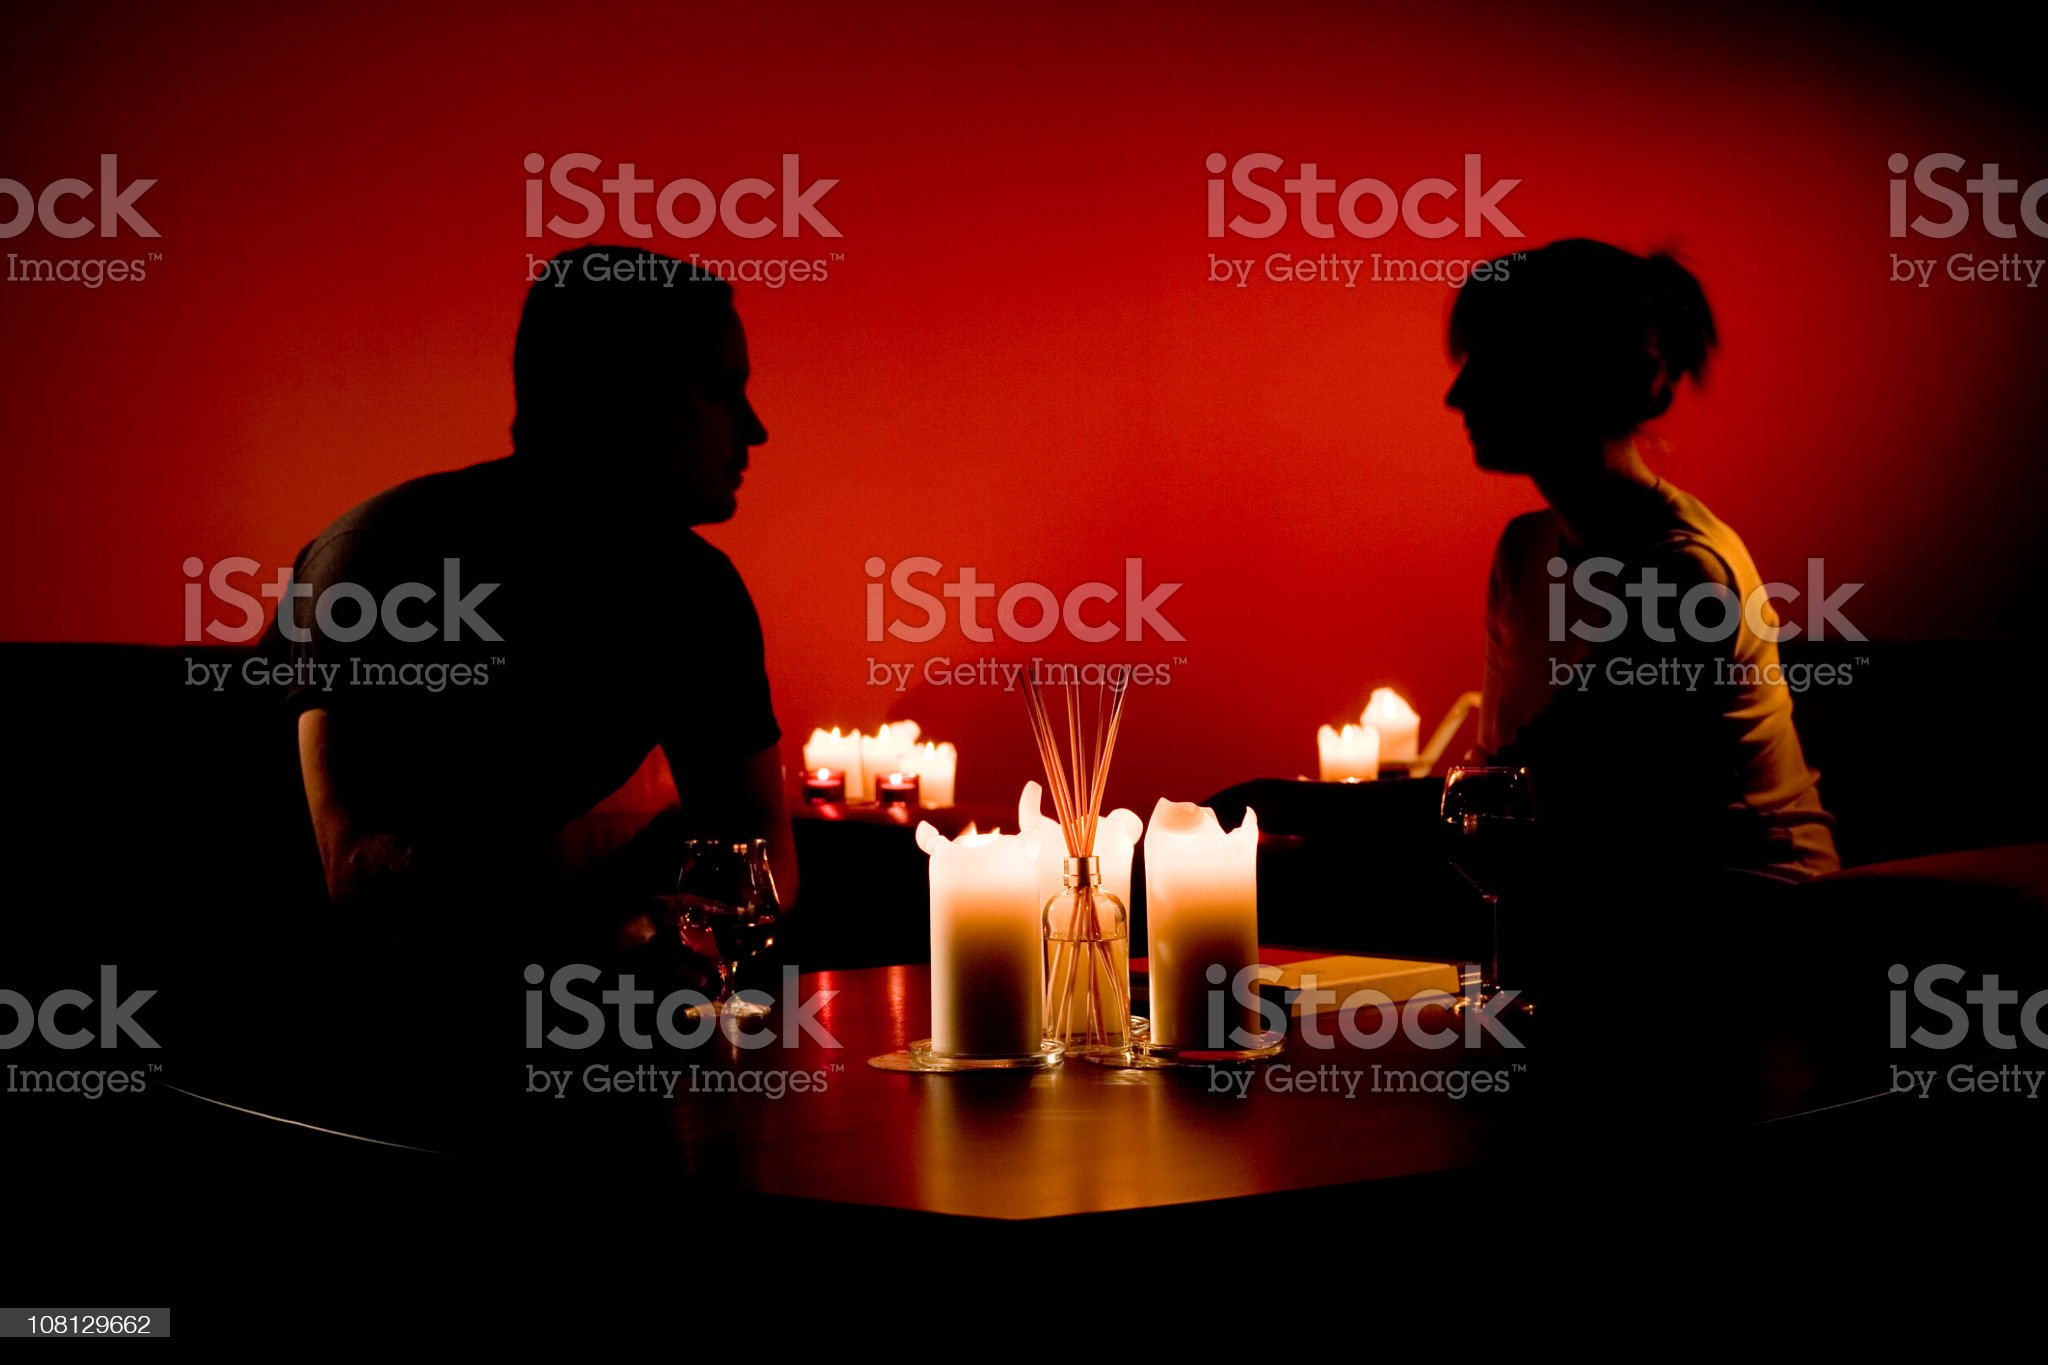 Silhouette of Man and Woman Sitting by Various Candles royalty-free stock photo